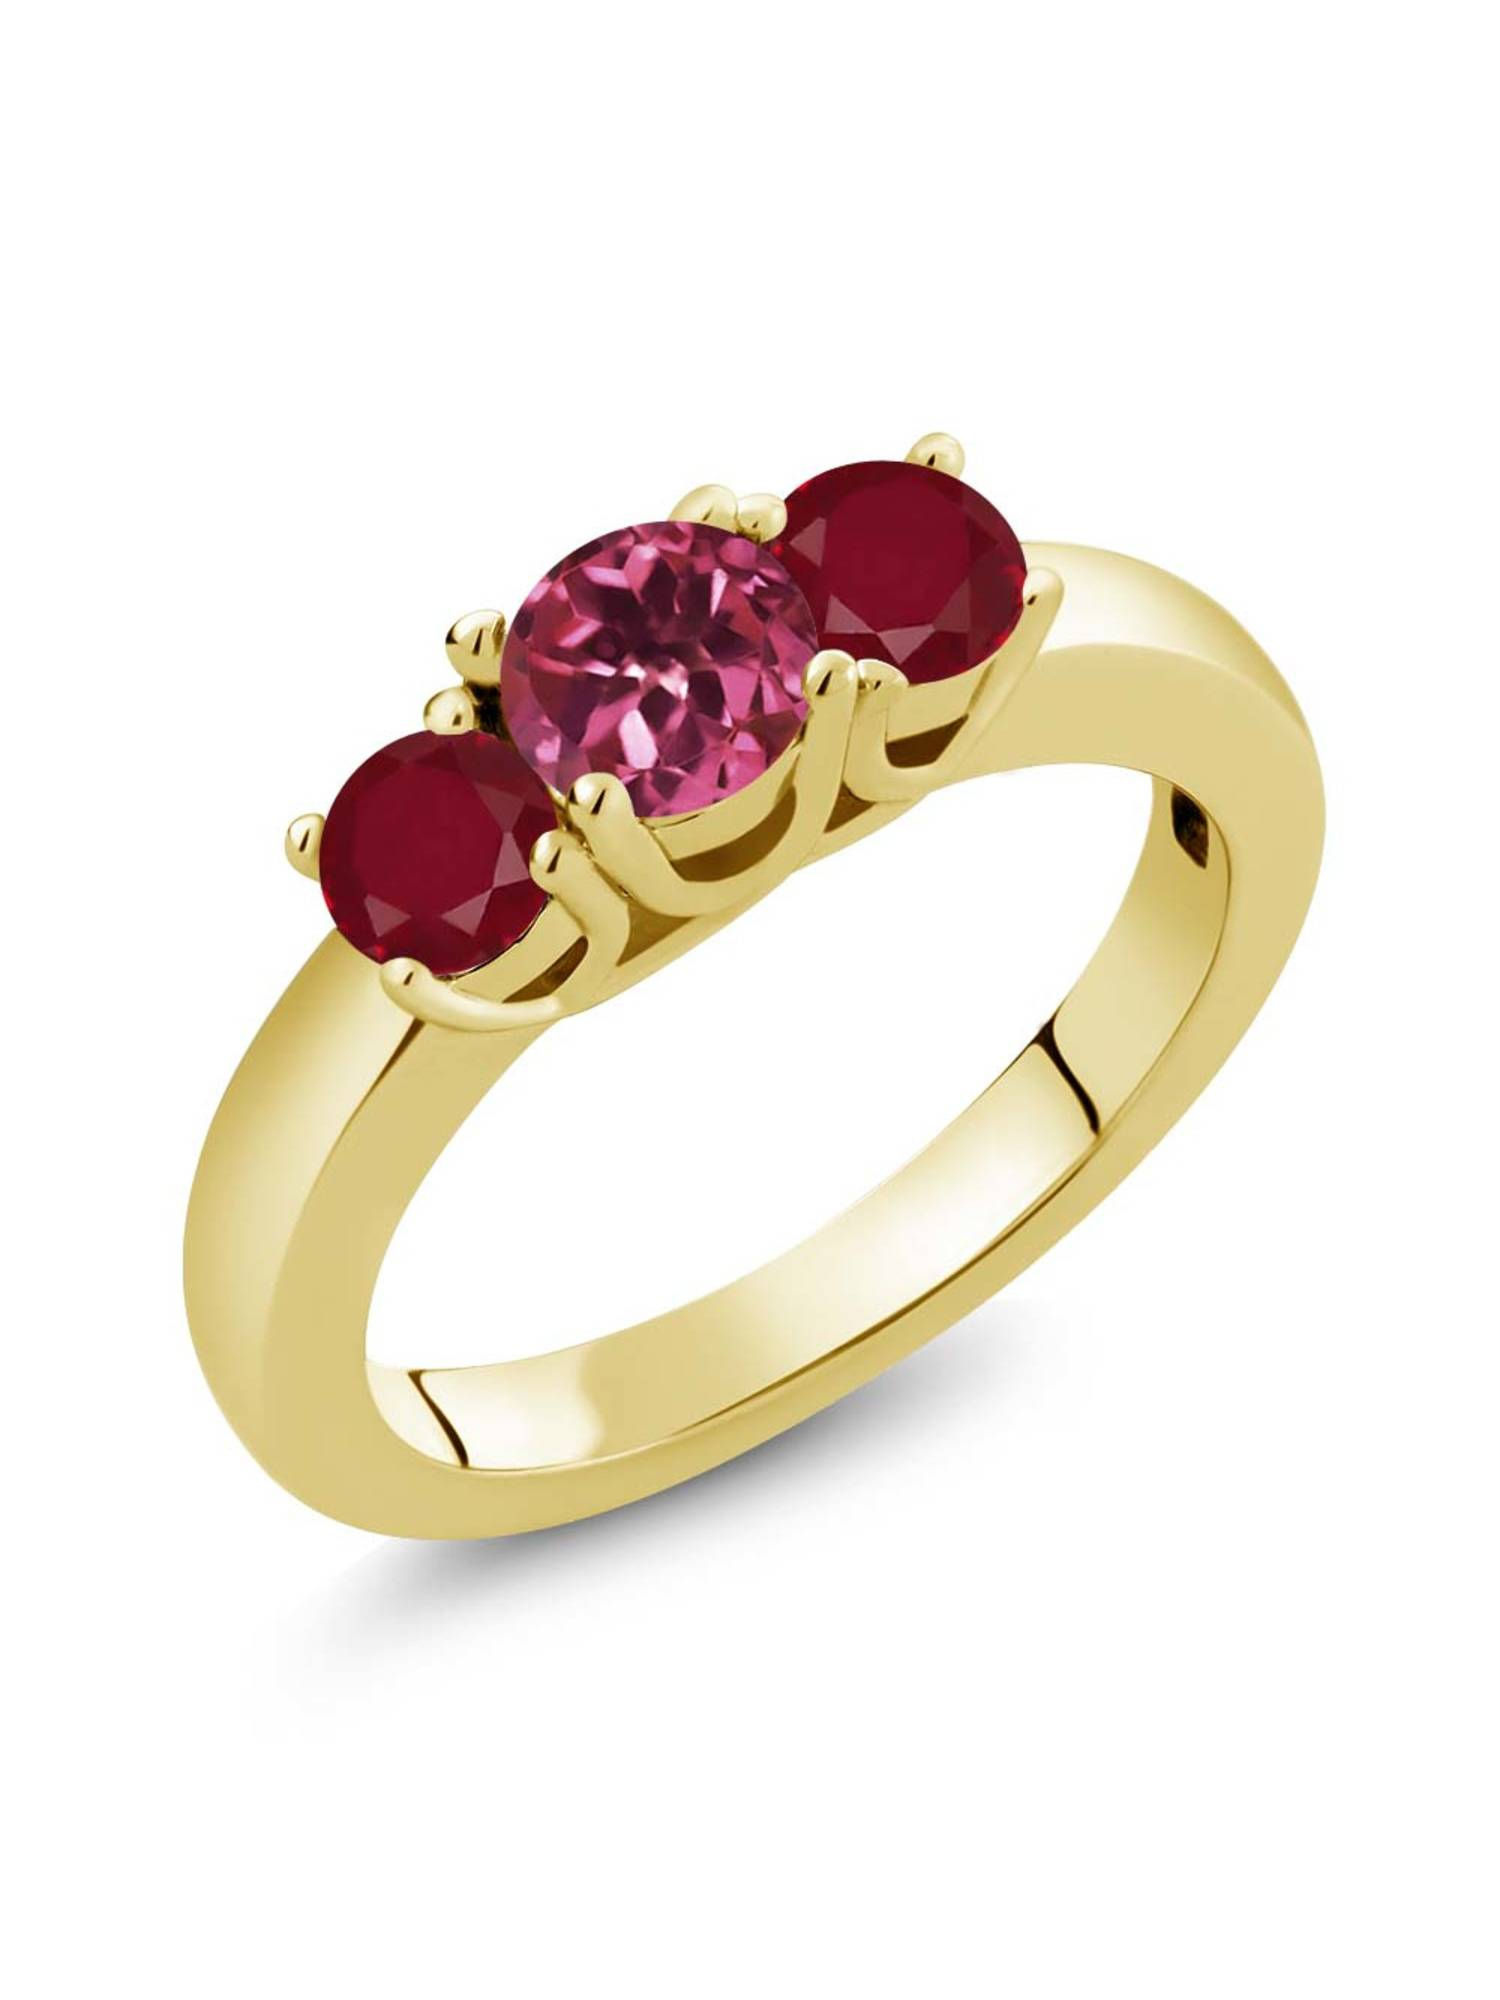 1.10 Ct Round Pink Tourmaline Red Ruby 18K Yellow Gold Plated Silver Ring by